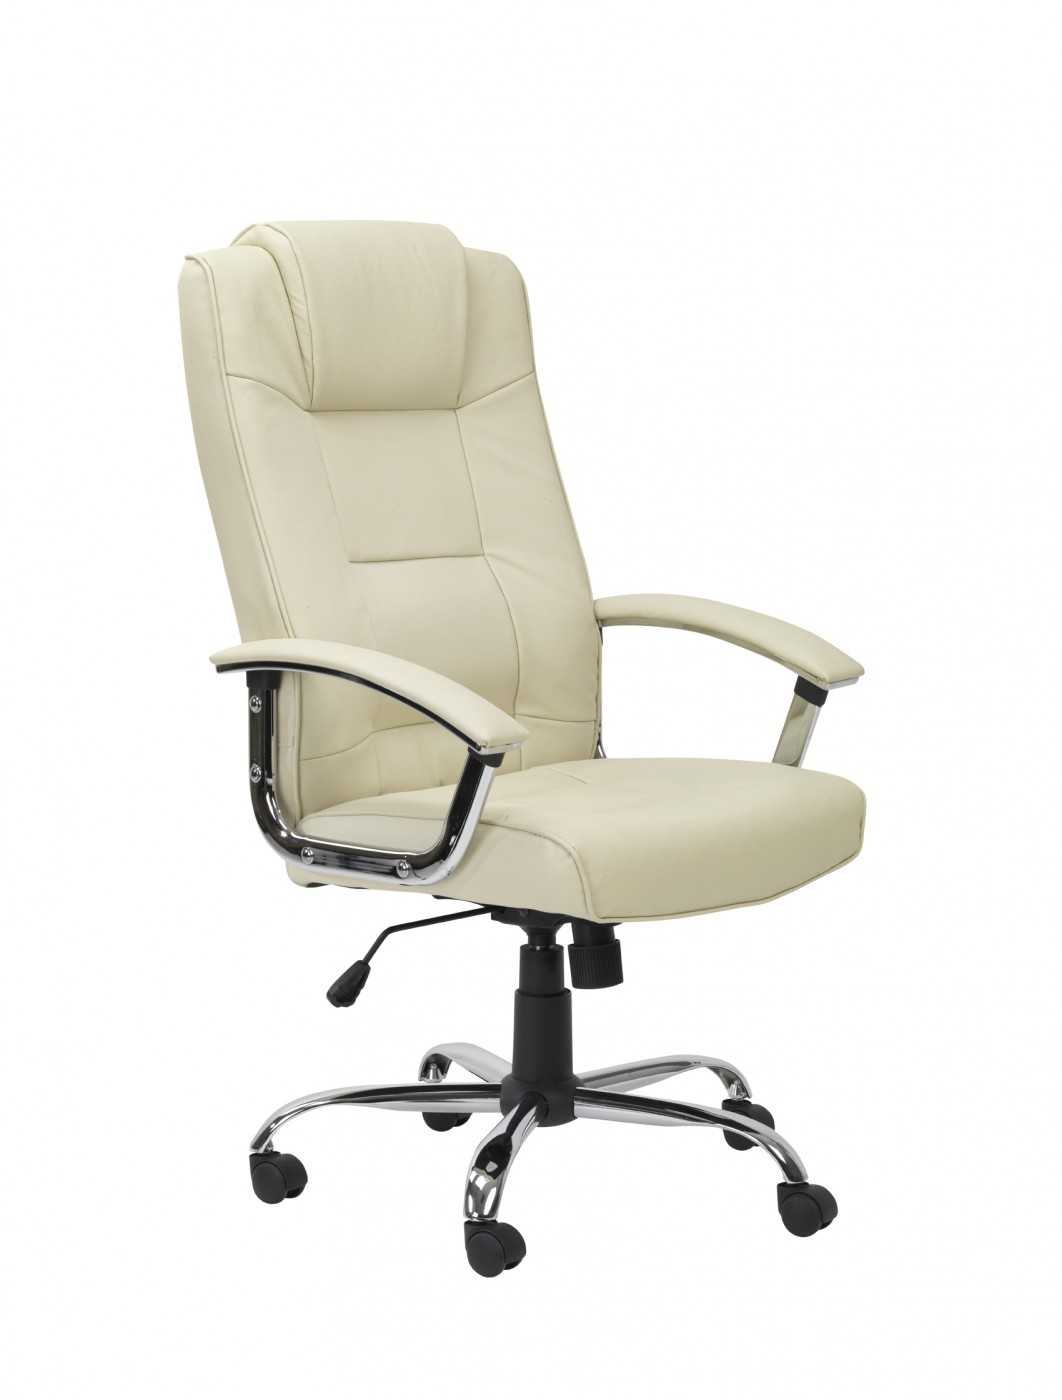 Executive Chair Executive Chair Aoc4201a L 121 Office Furniture